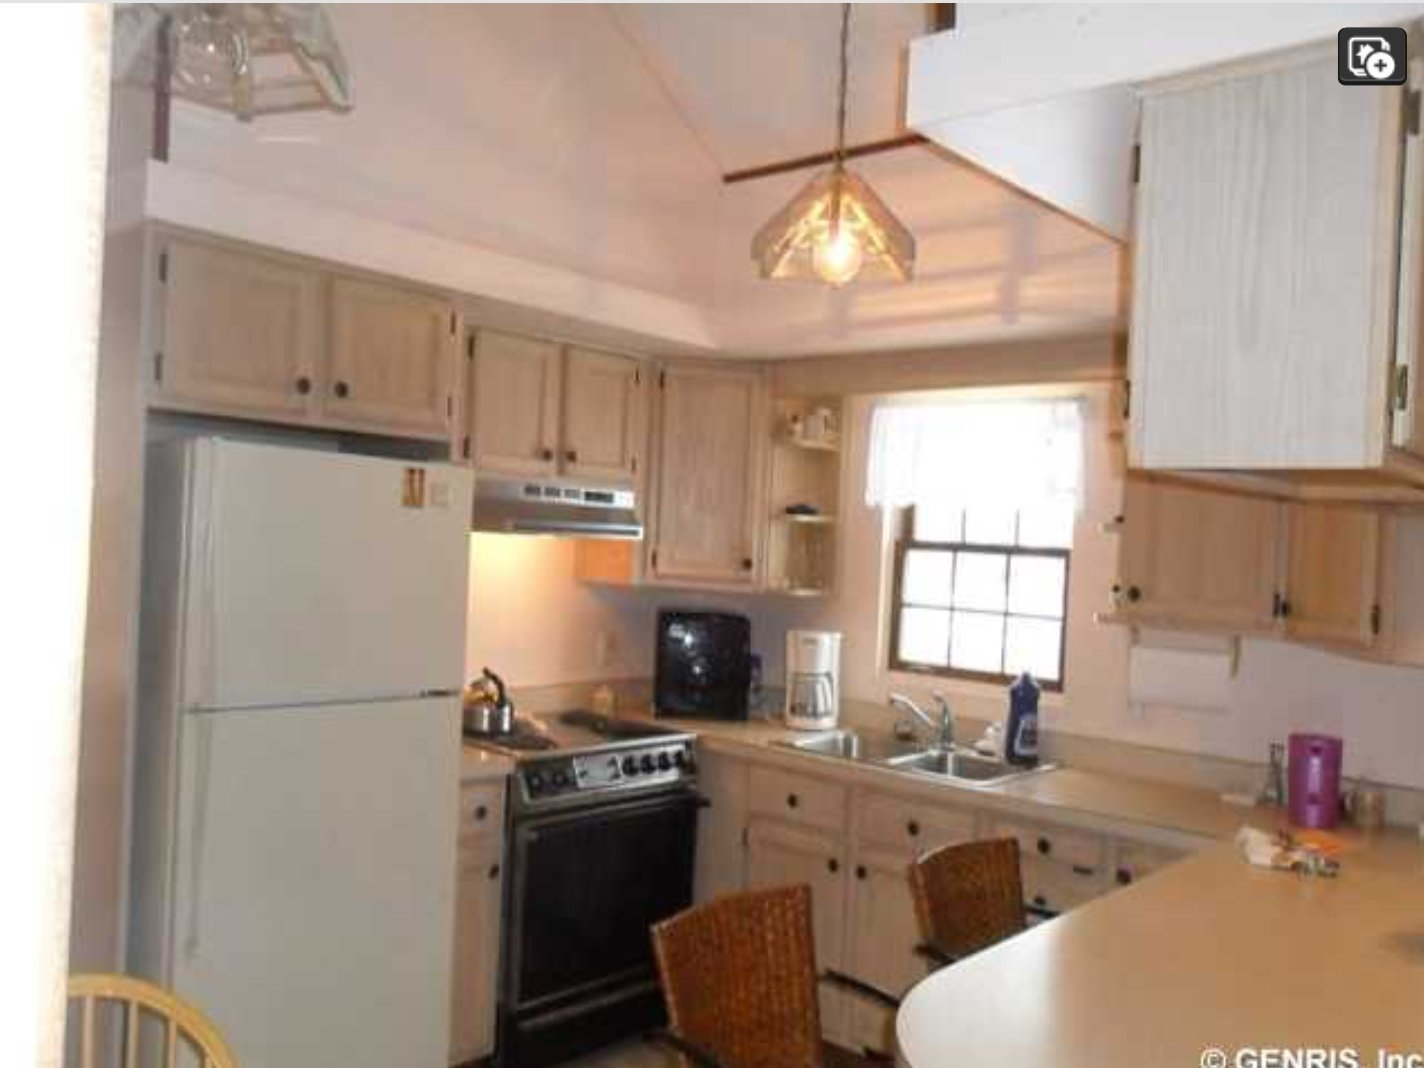 The itsy bitys cottage kitchen makeover